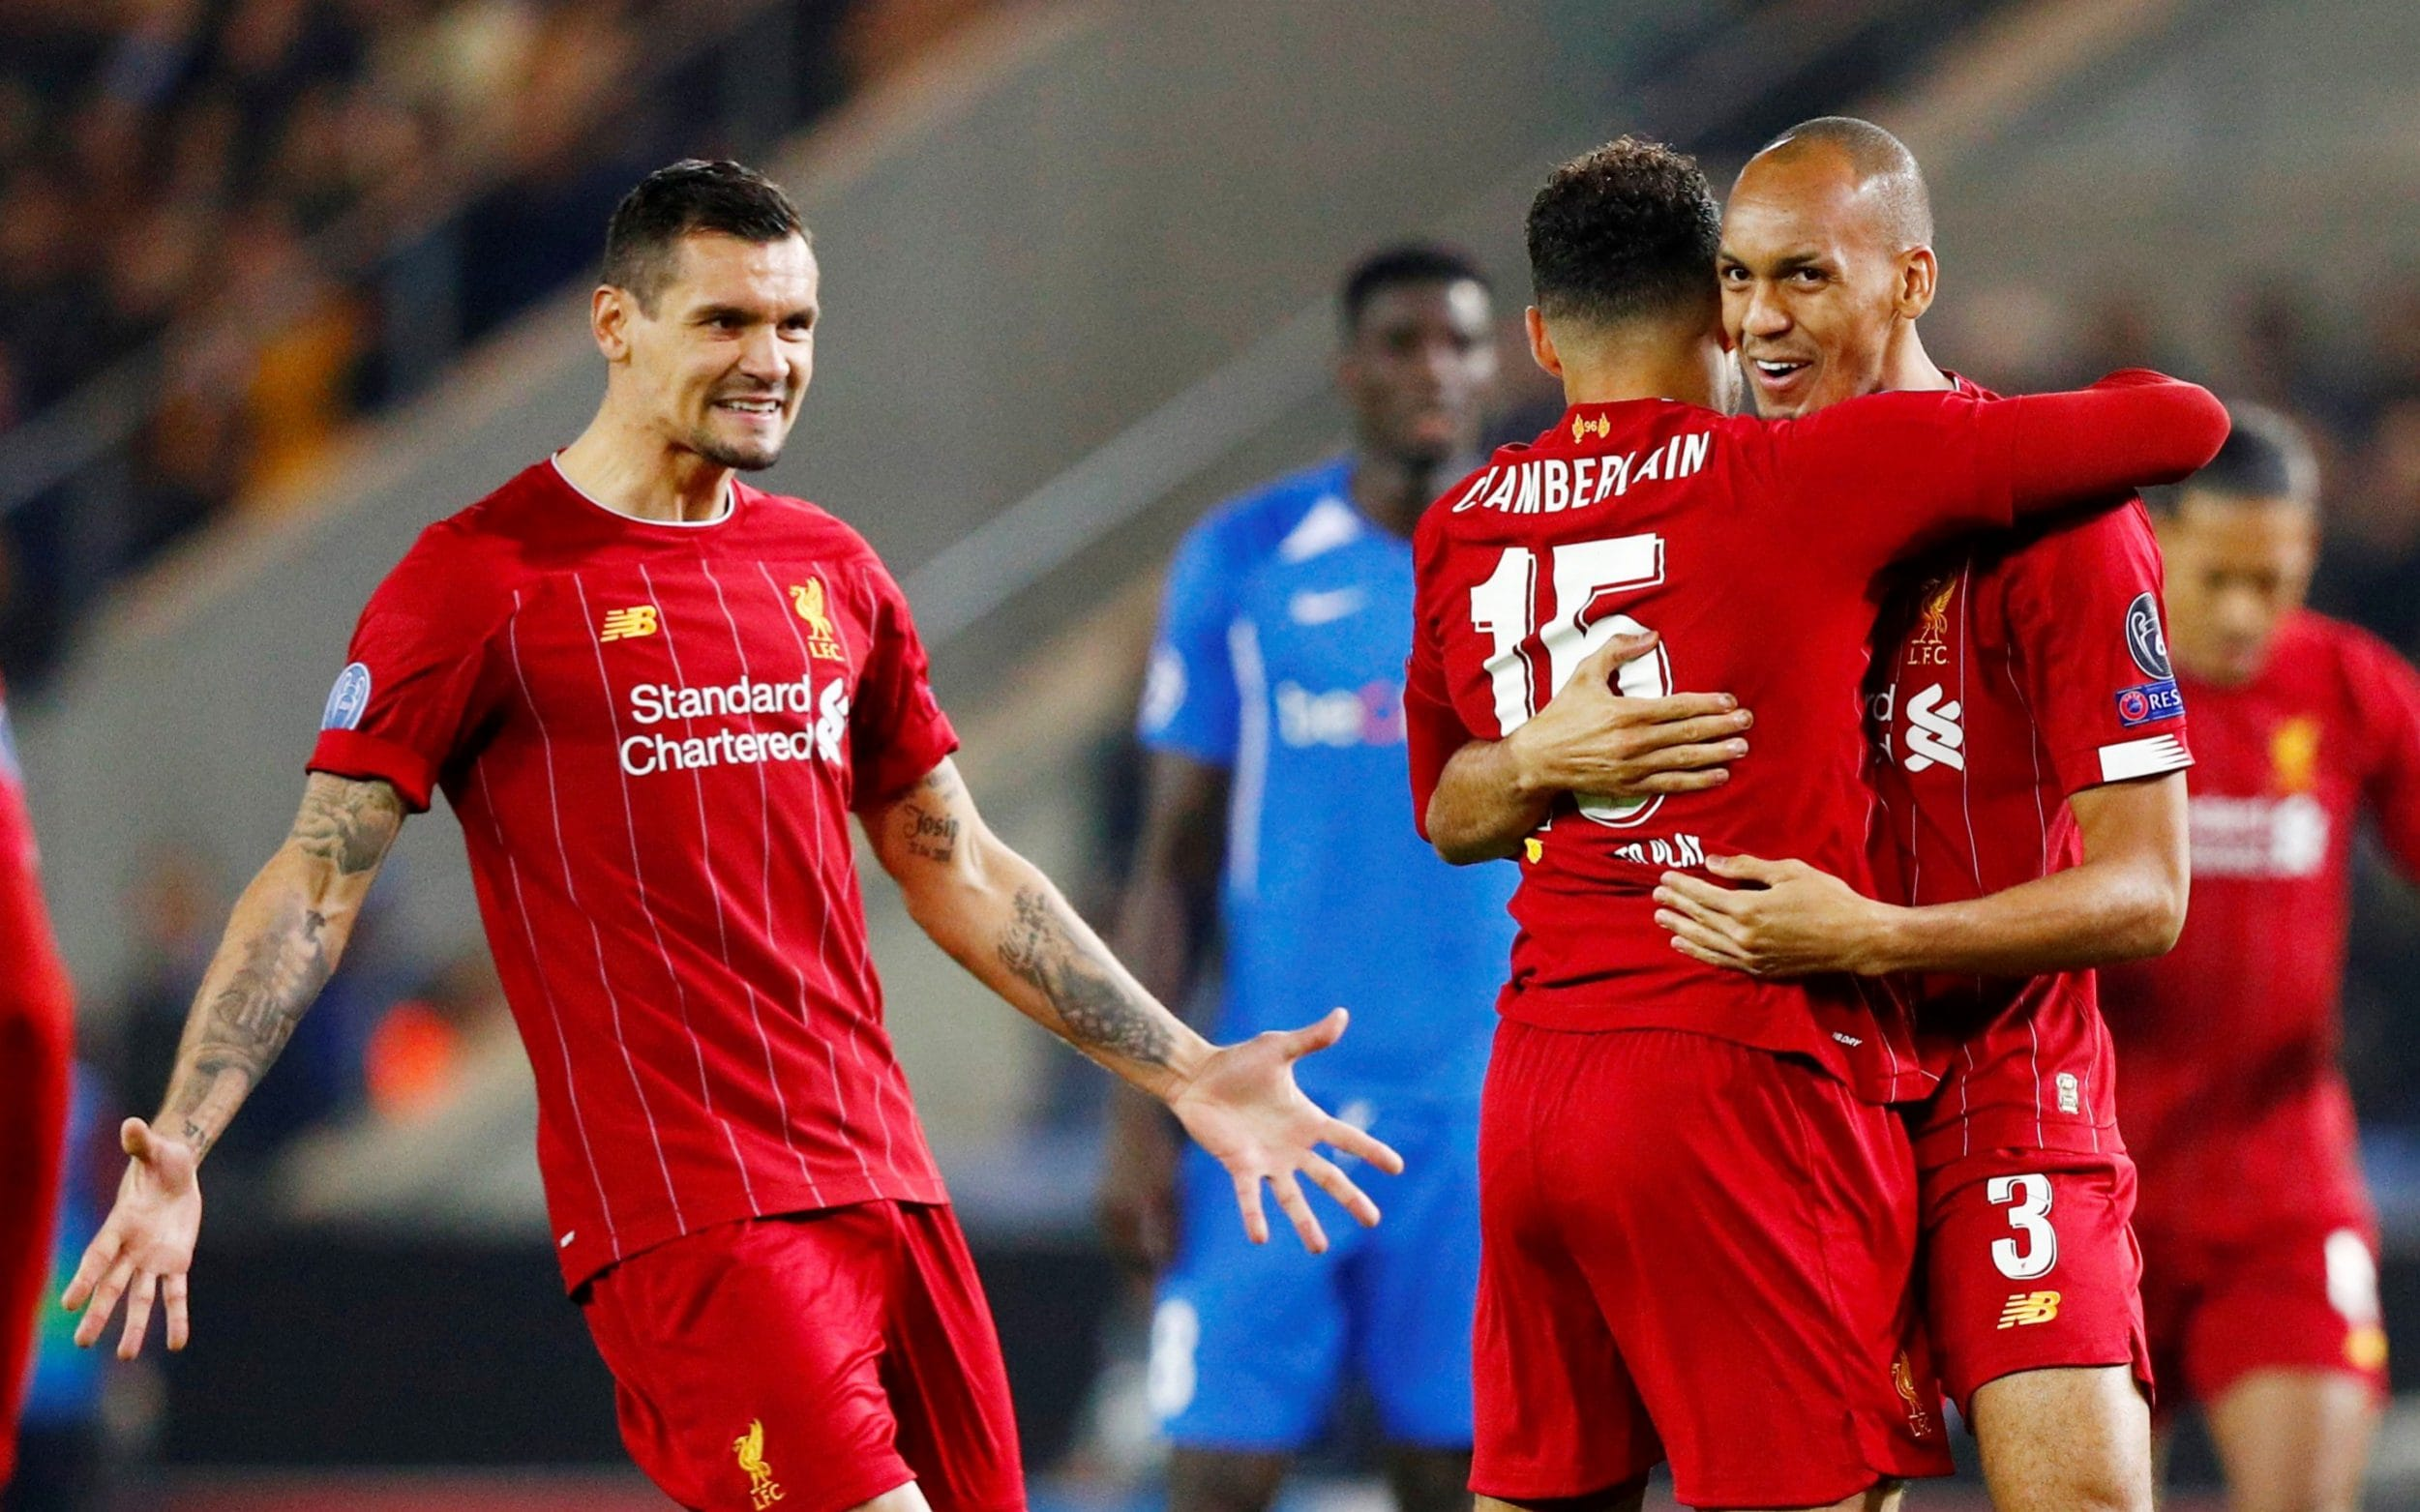 Liverpool end their poor show in away games of the Champions League as they thrash Genk 4-1 in Genk